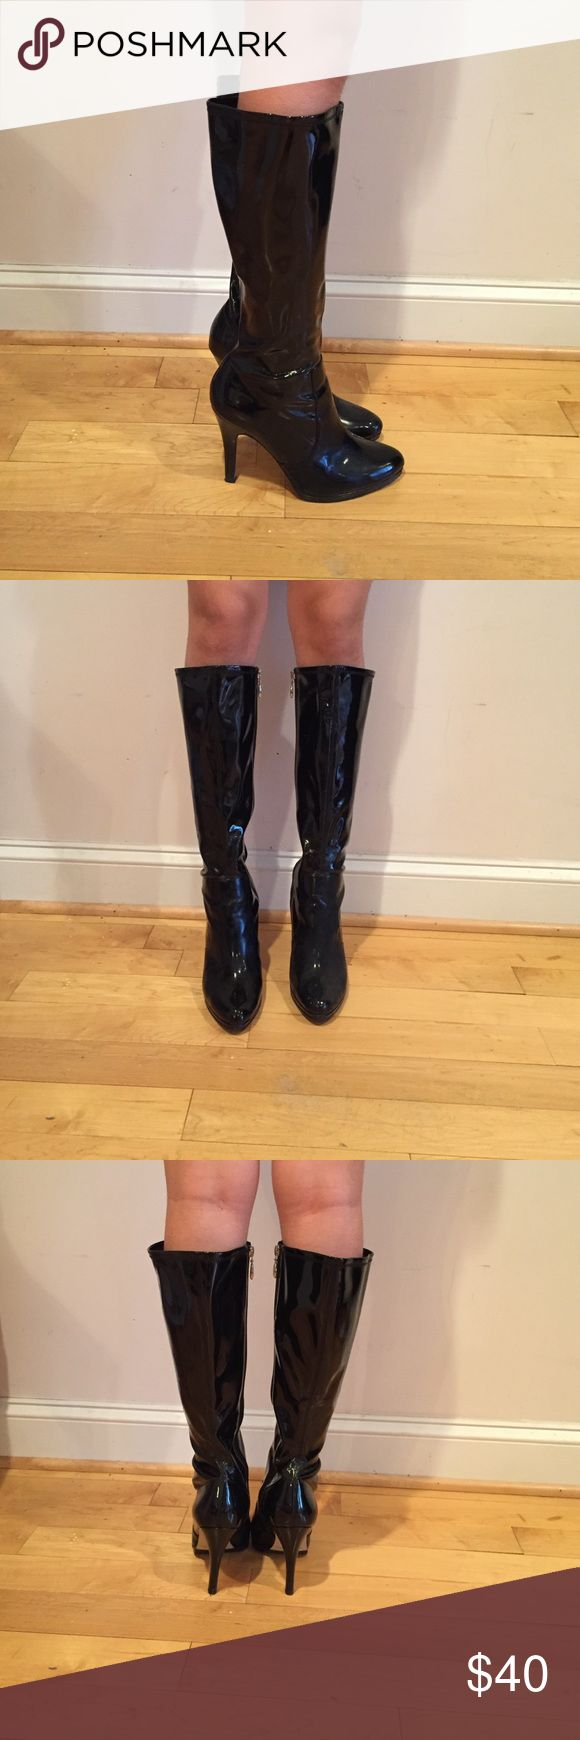 """Tahari patent leather boots Only been worn once. Black patent leather. 4"""" heel. Tahari Shoes Heeled Boots"""